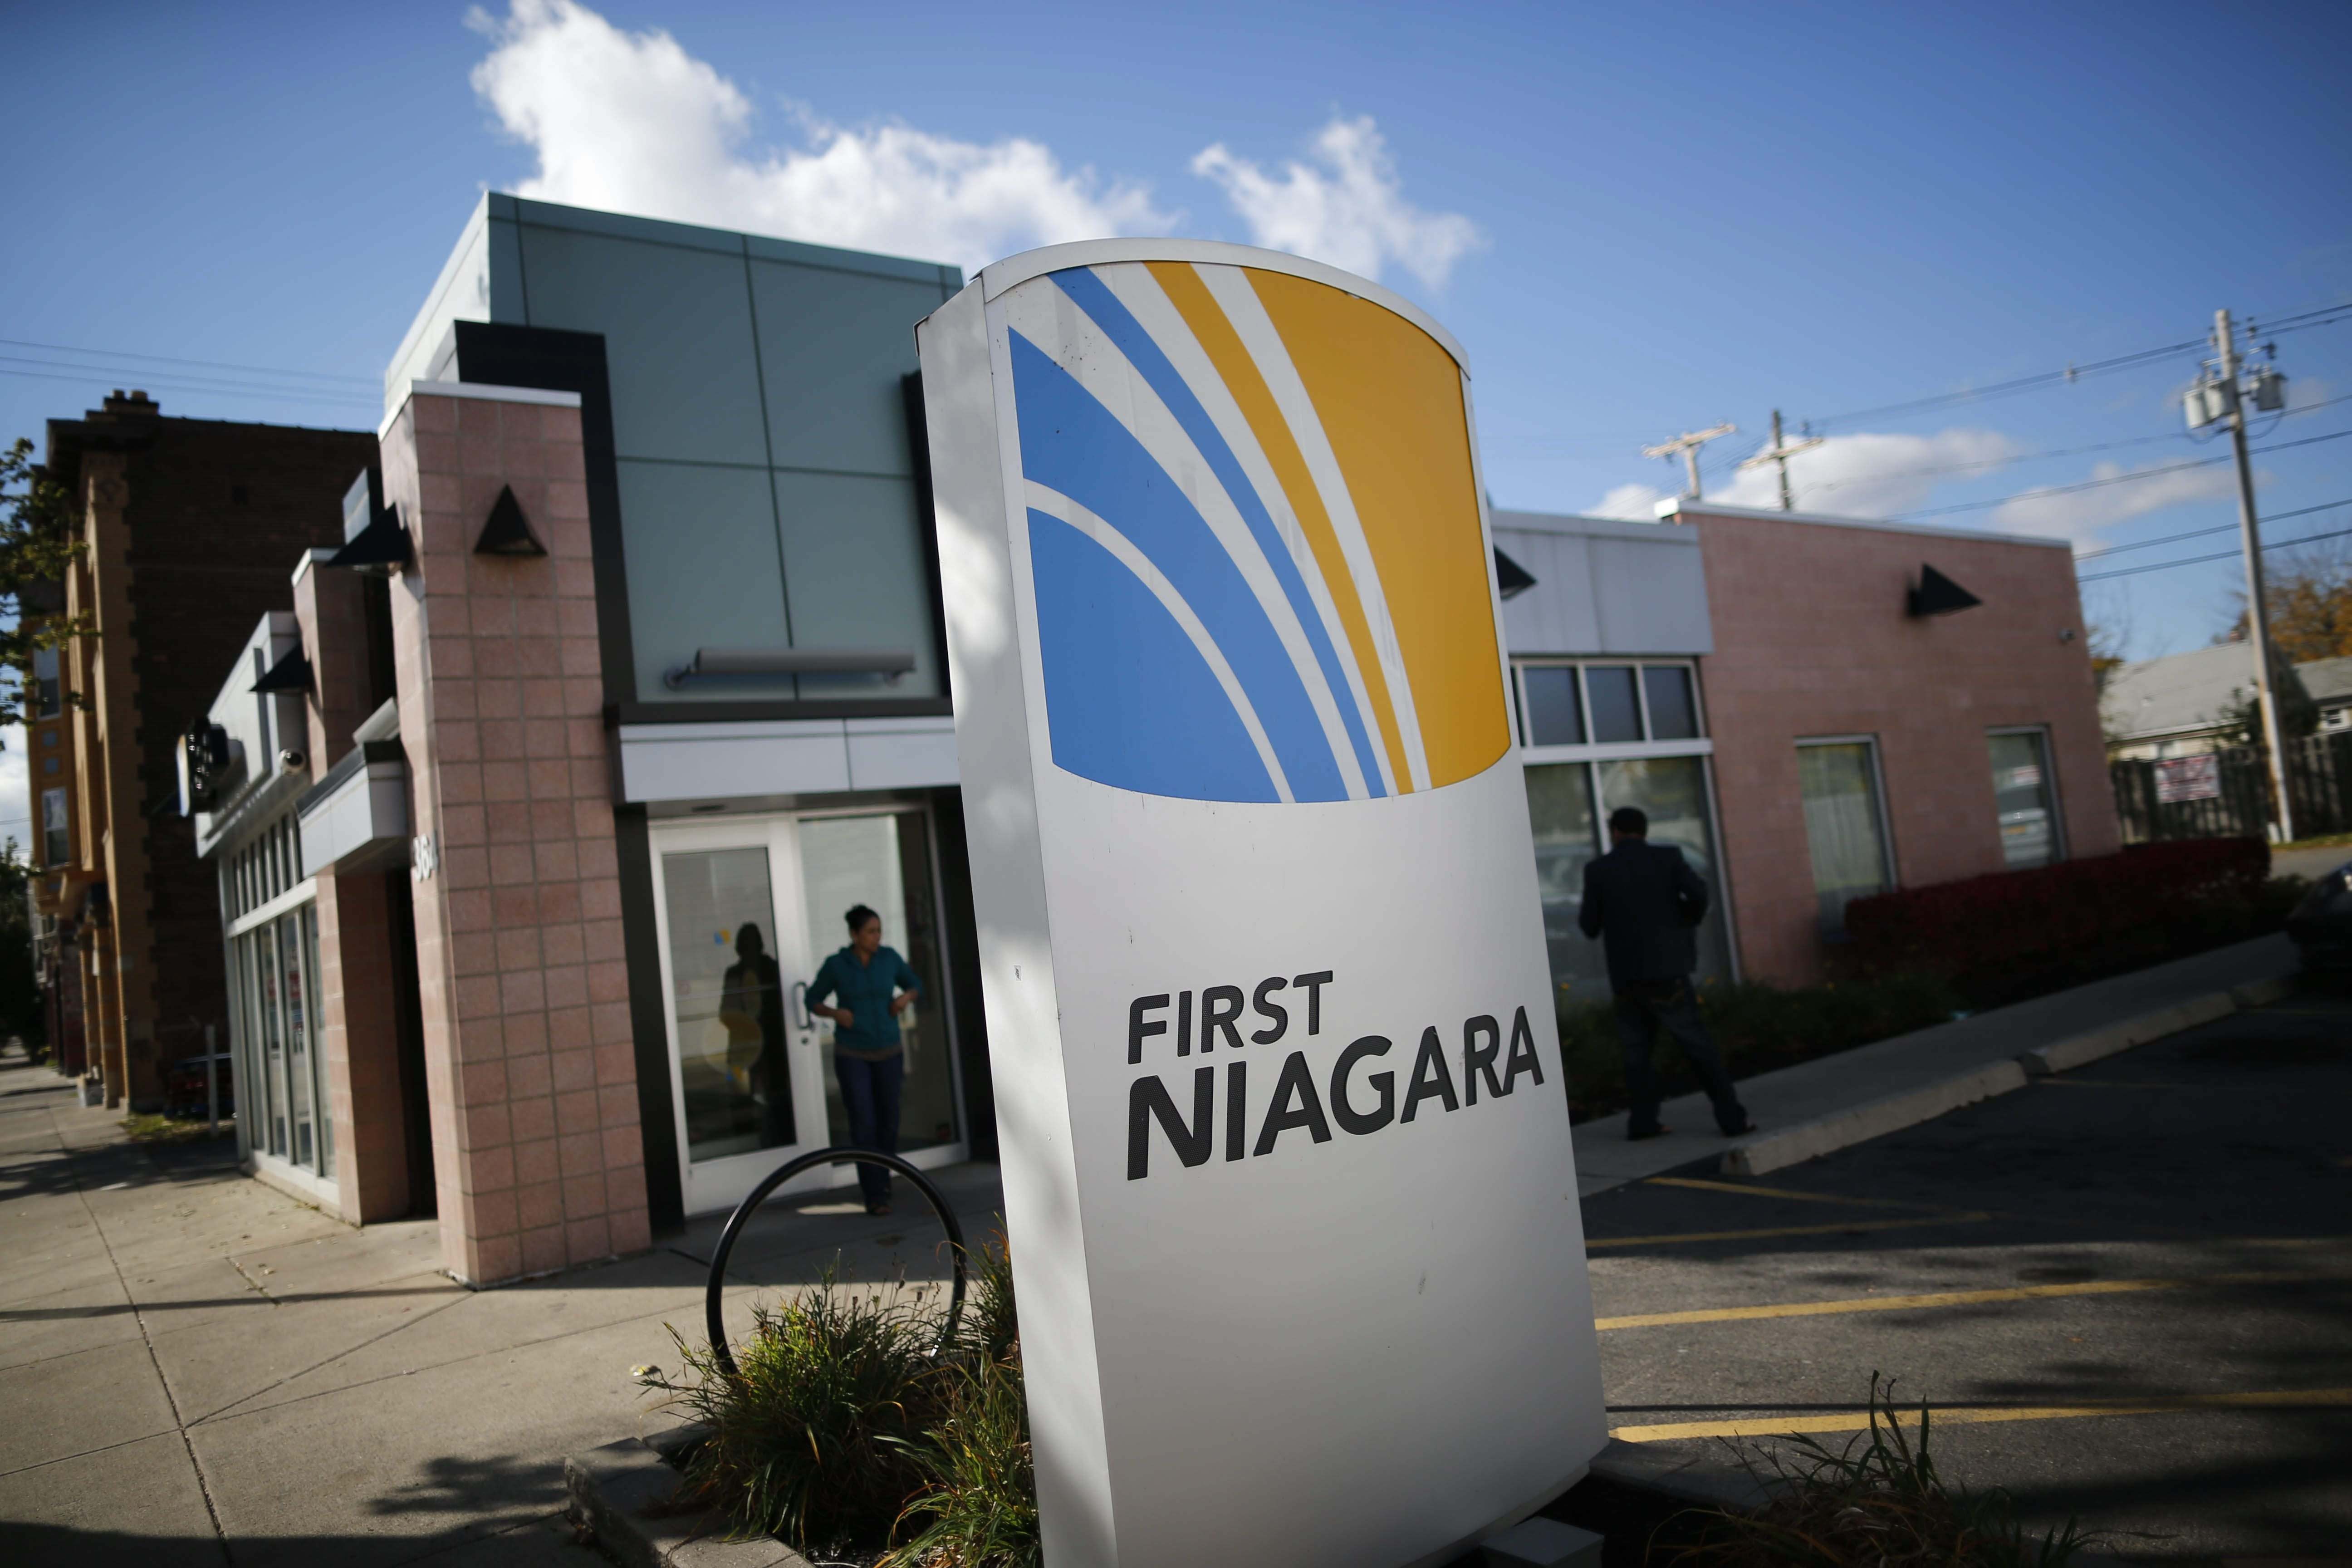 Documents show the First Niagara board drove the bank's sale, rather than a buyer pushing for a deal.